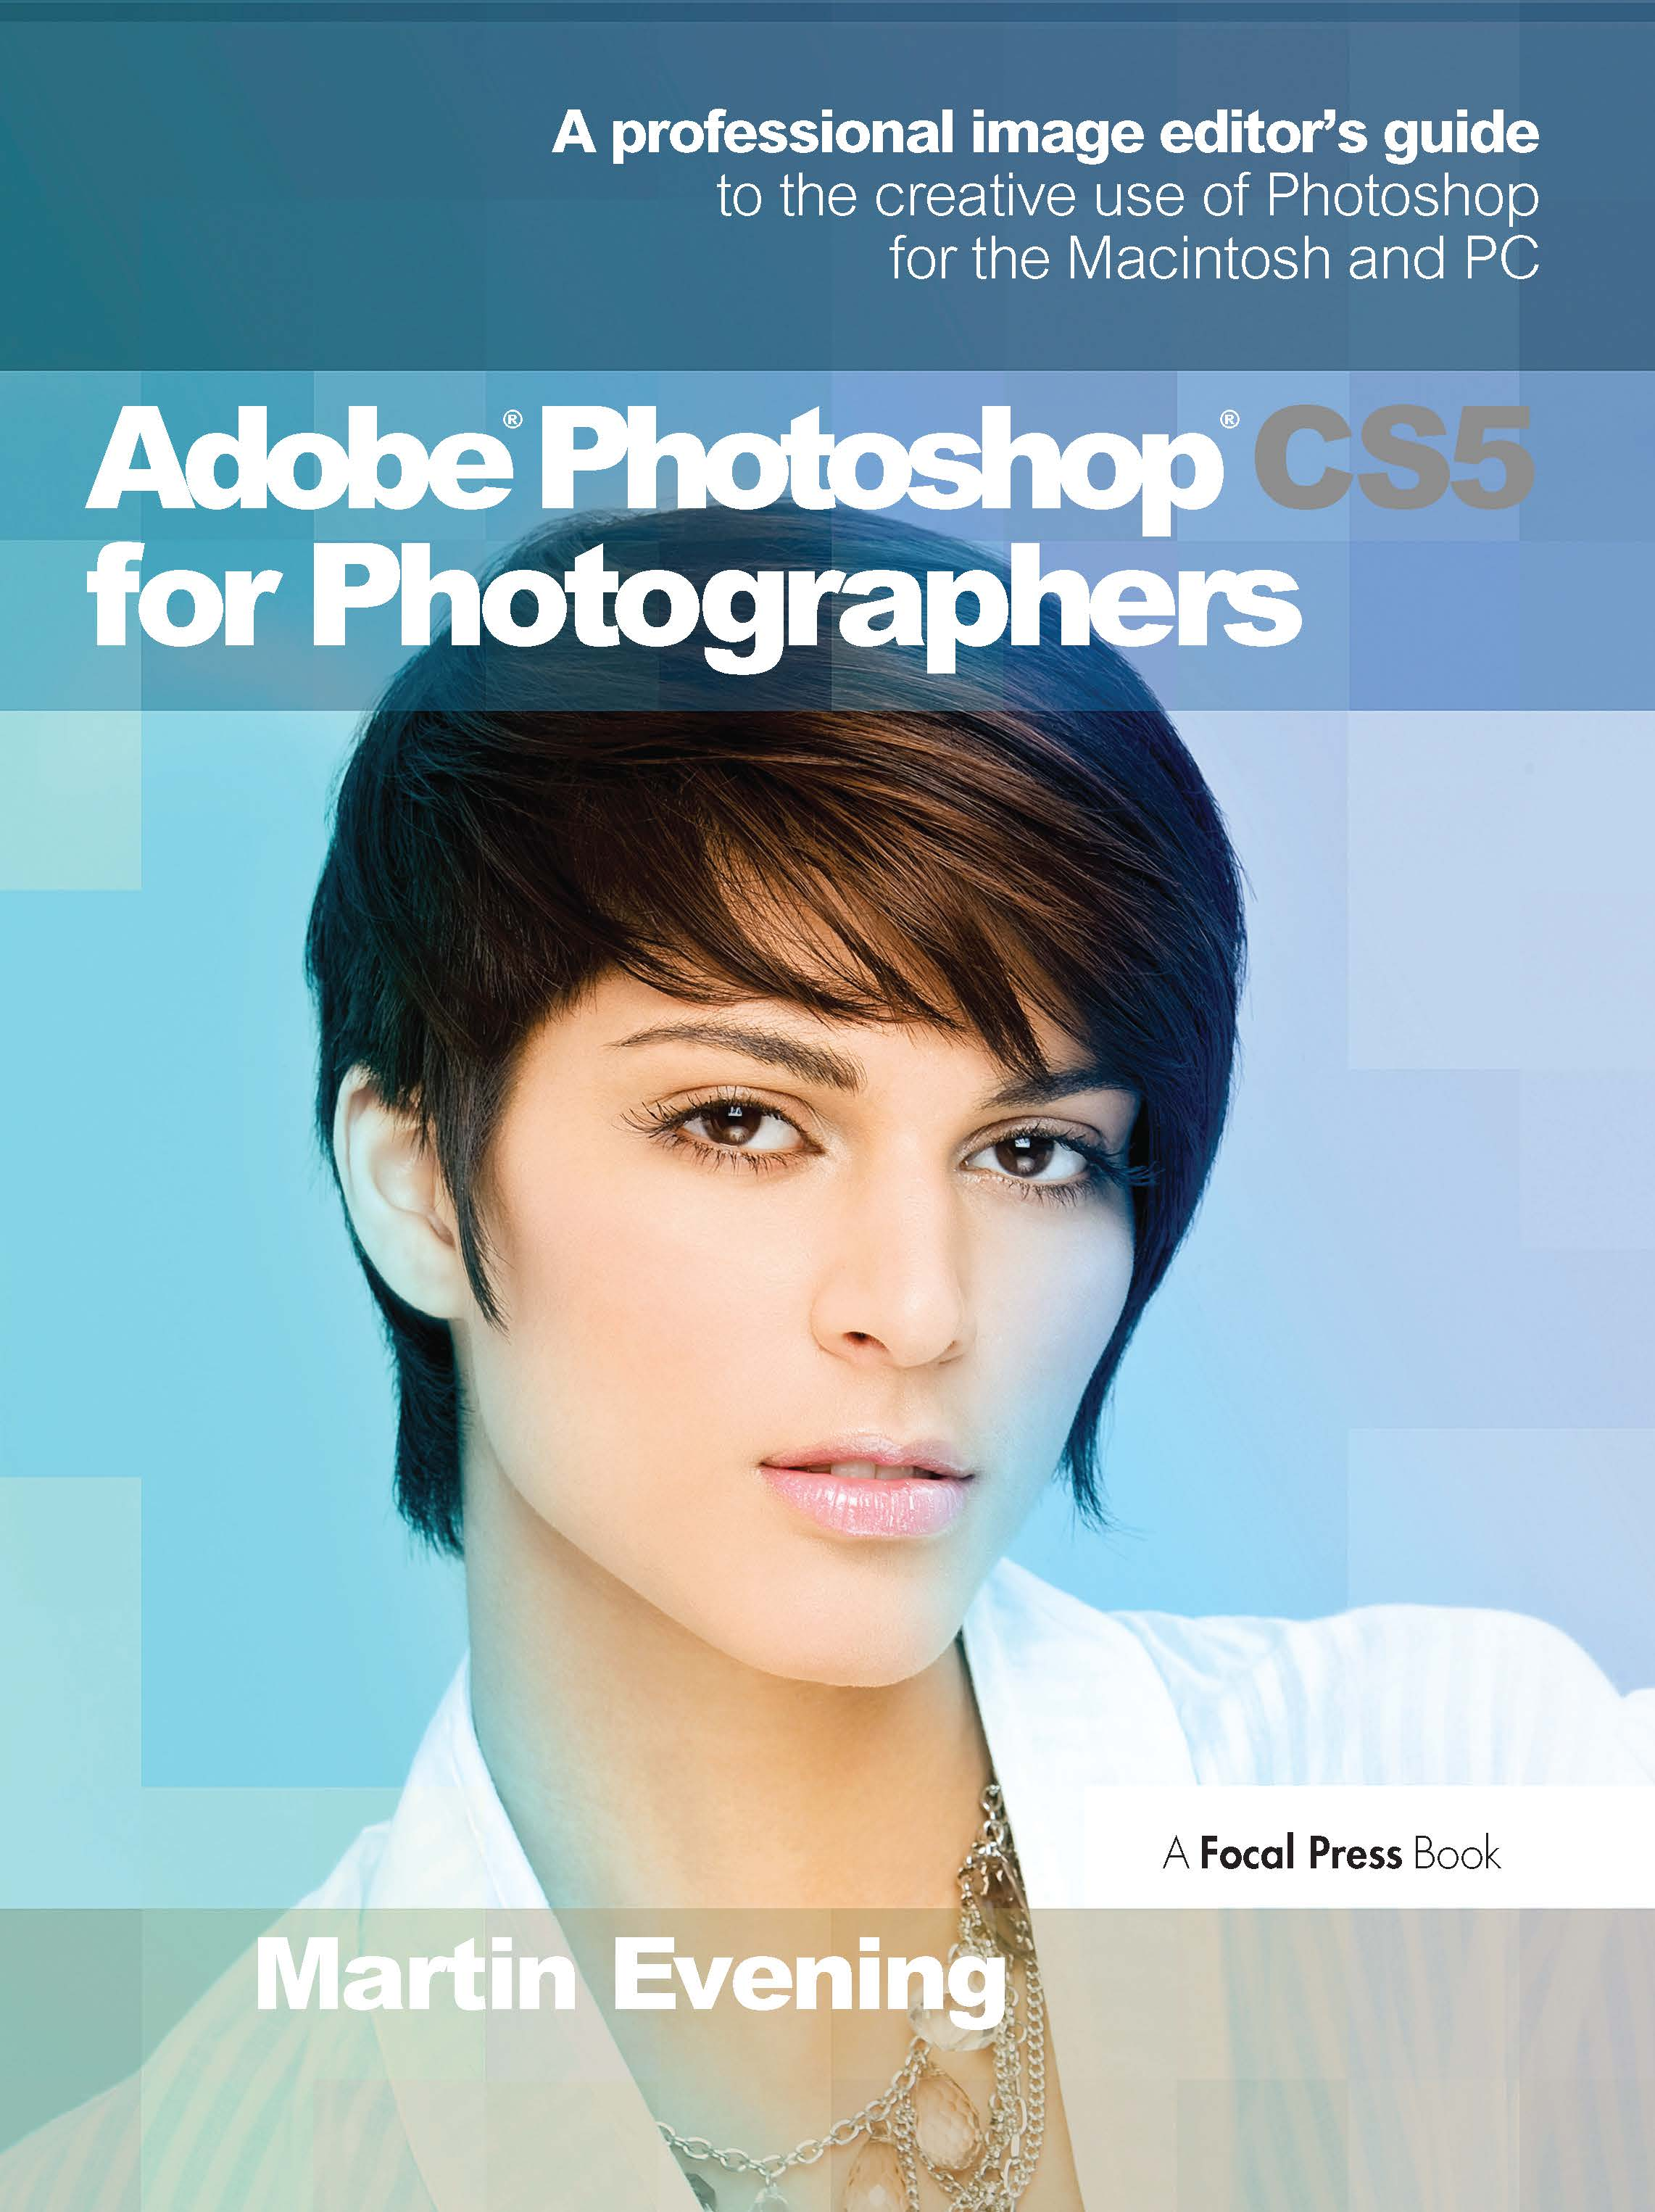 Adobe Photoshop CS5 for Photographers: A professional image editor's guide to the creative use of Photoshop for the Macintosh and PC book cover